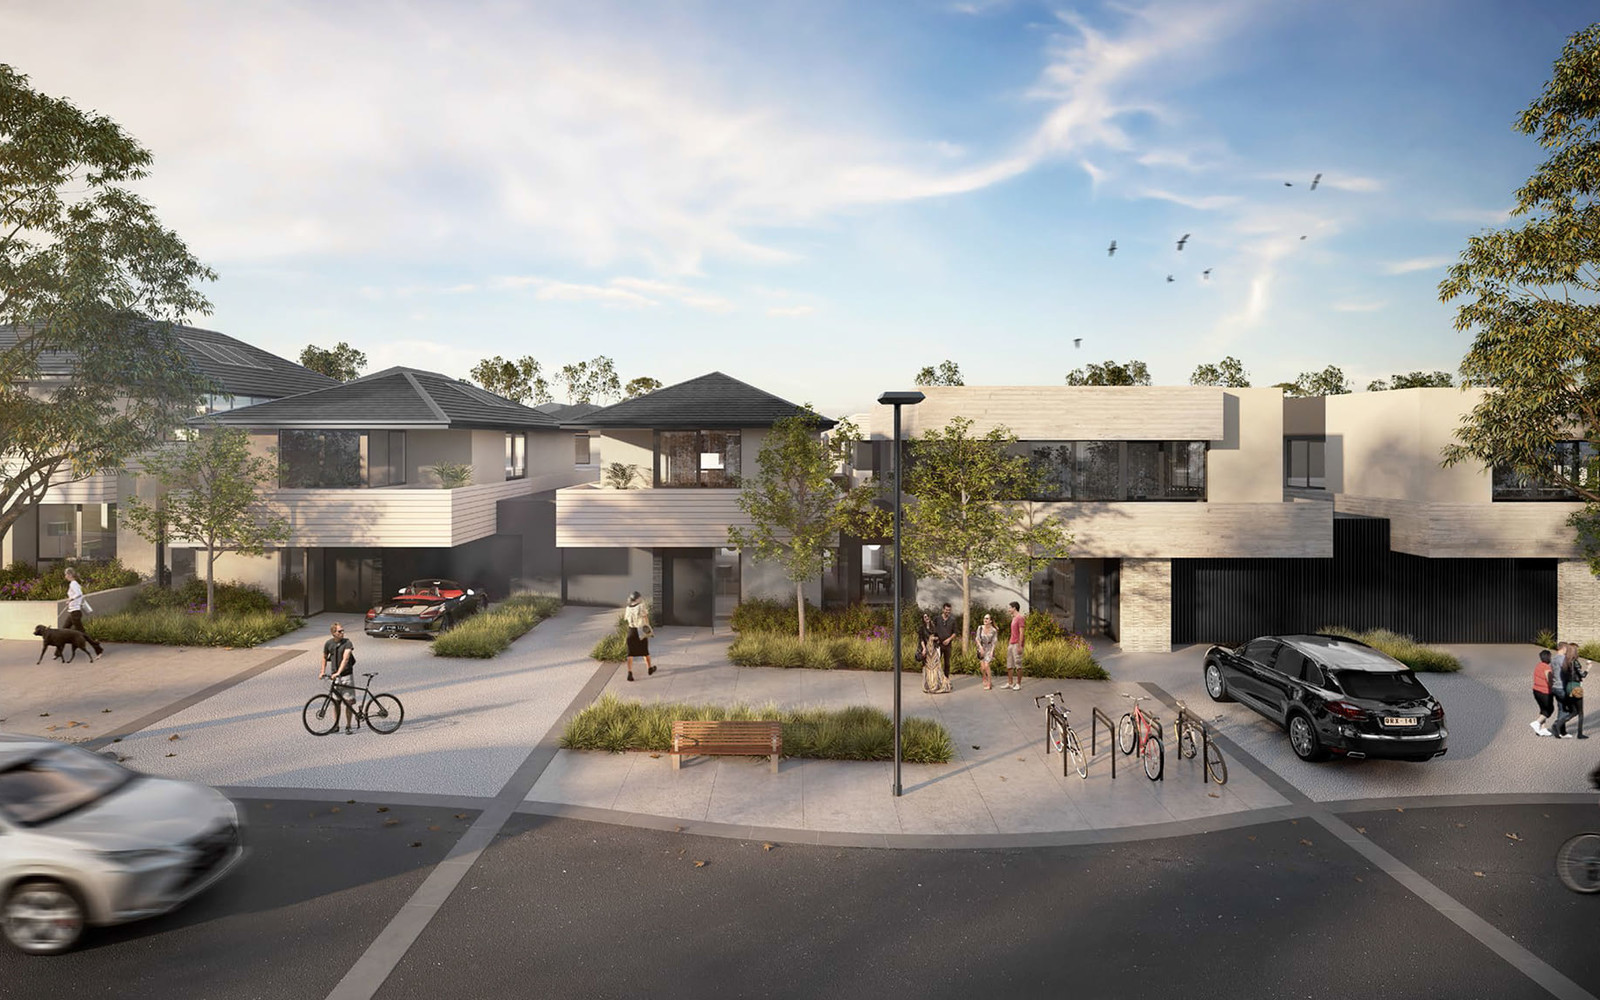 Streets | YarraBend: Off the Plan Townhouses, Apartments & Property Melbourne